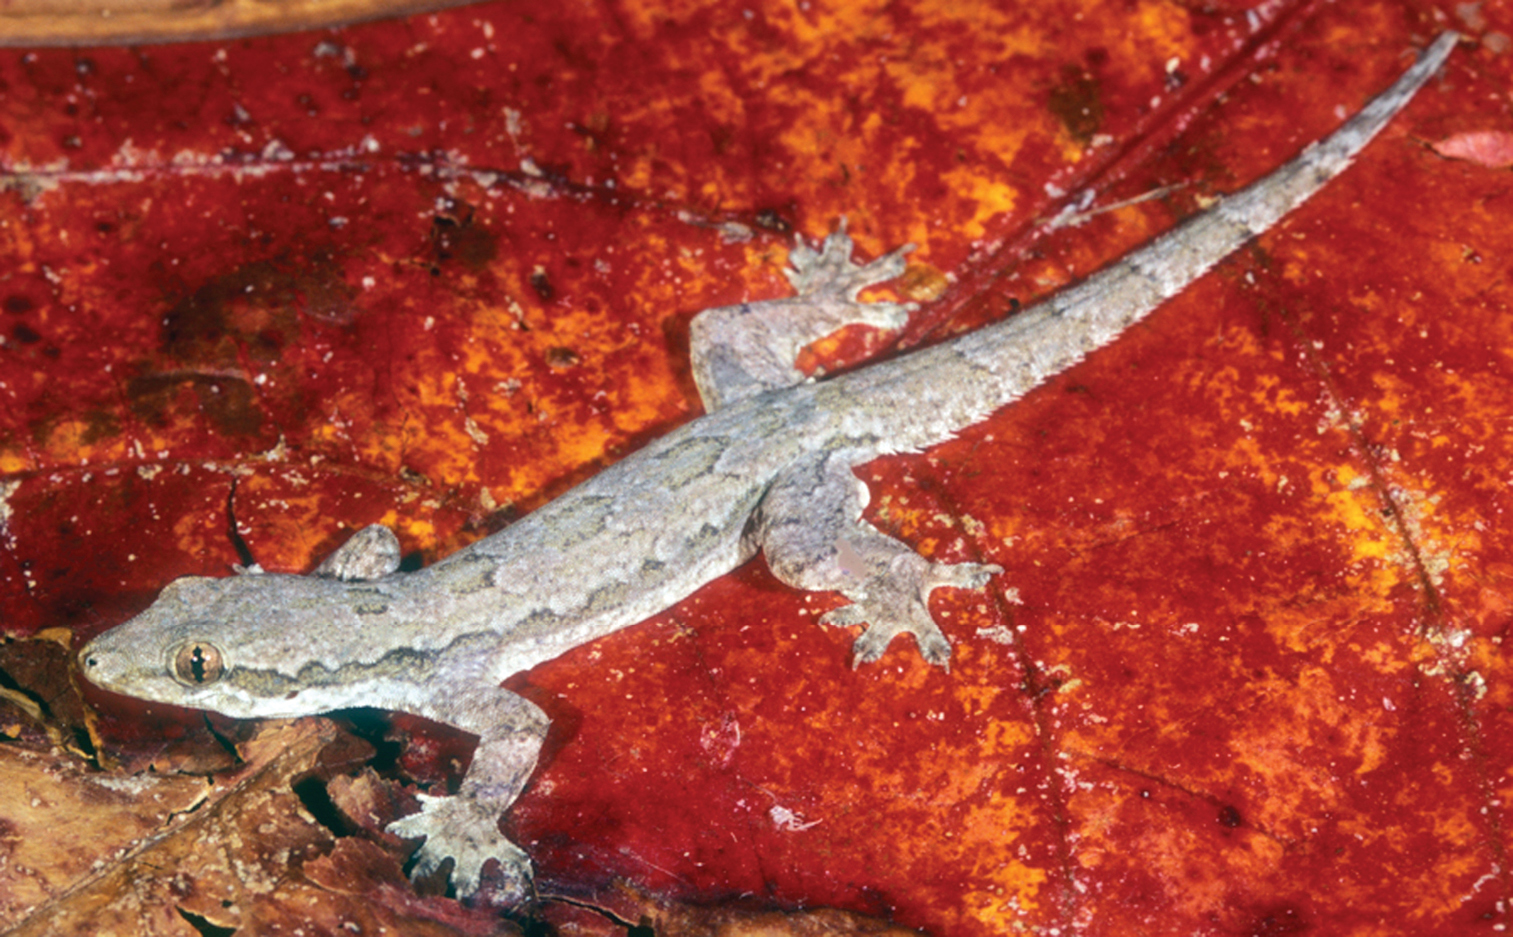 Gliding Geckos Smash Into Tree Trunks Head First Then Stabilize Using Their Tails